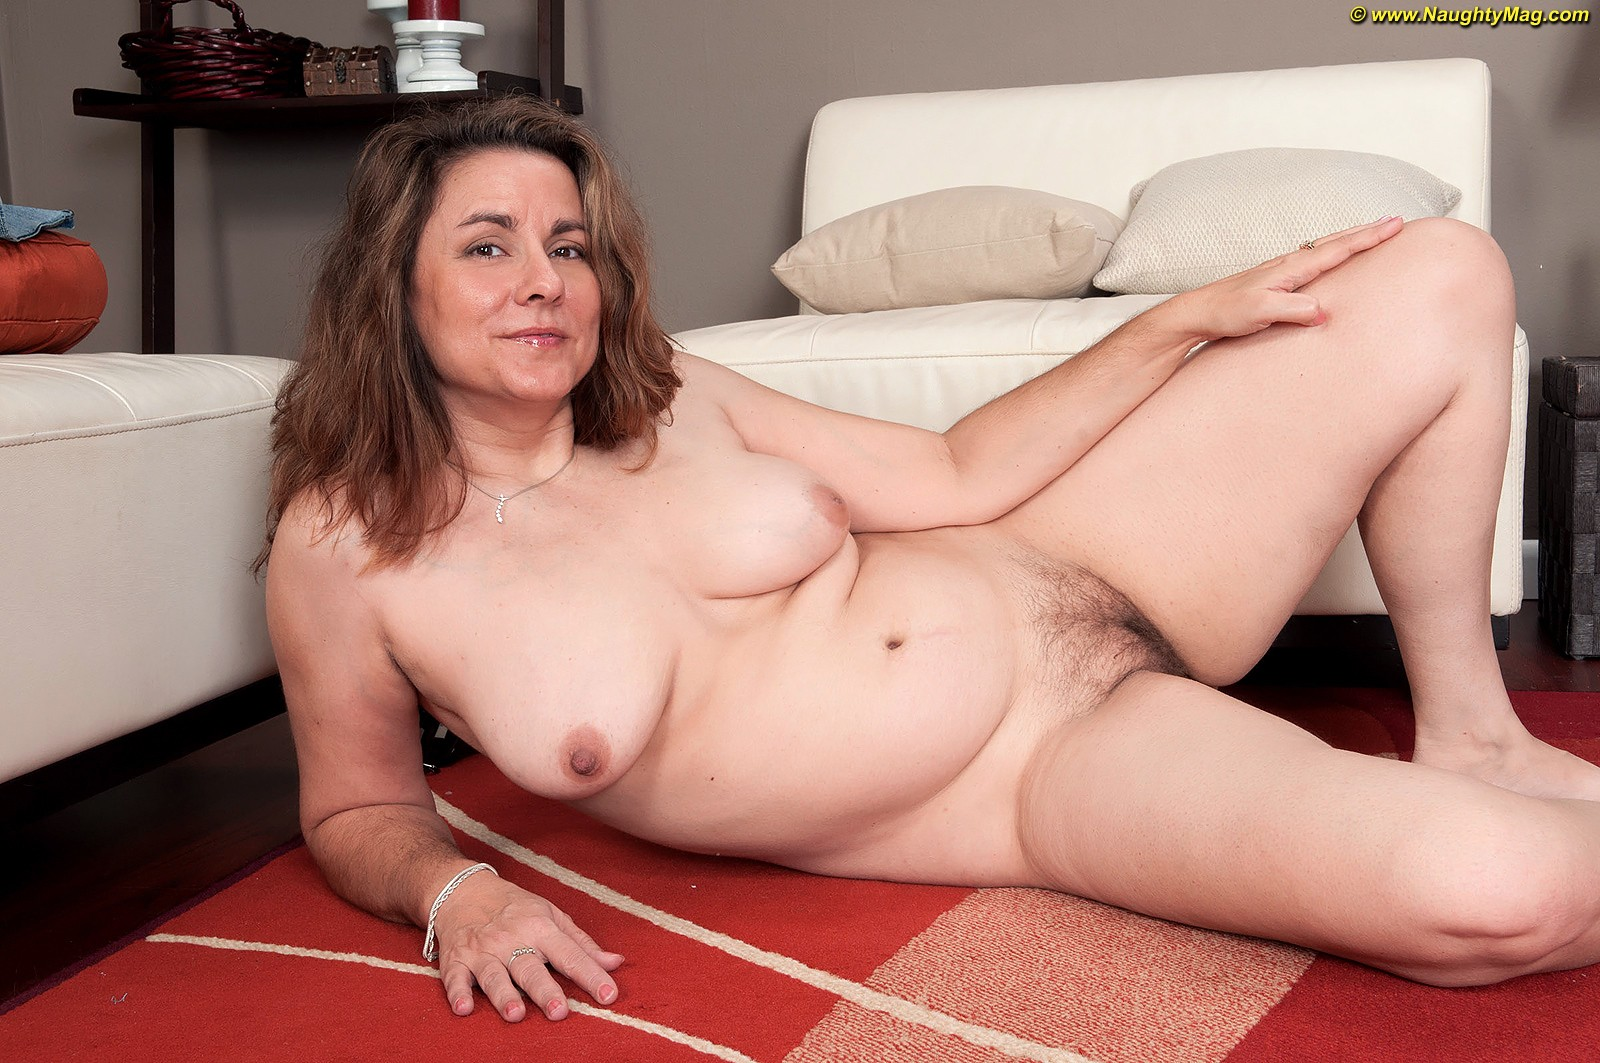 Girls middle age woman nud phote moms